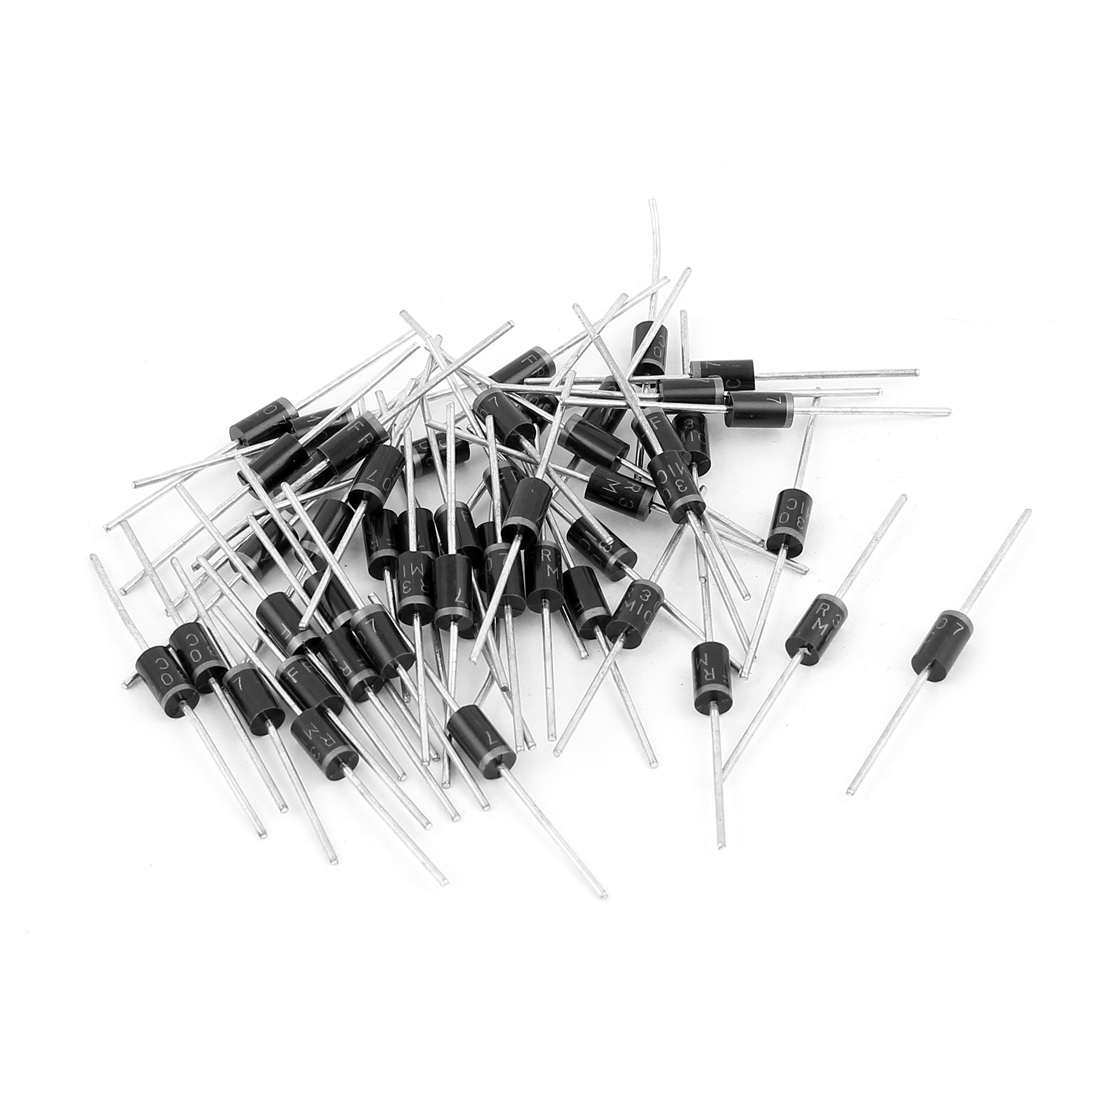 3A 1000V FR307 Cylindrical Axial Leaded Rectifier Schottky Diodes 50 Pcs